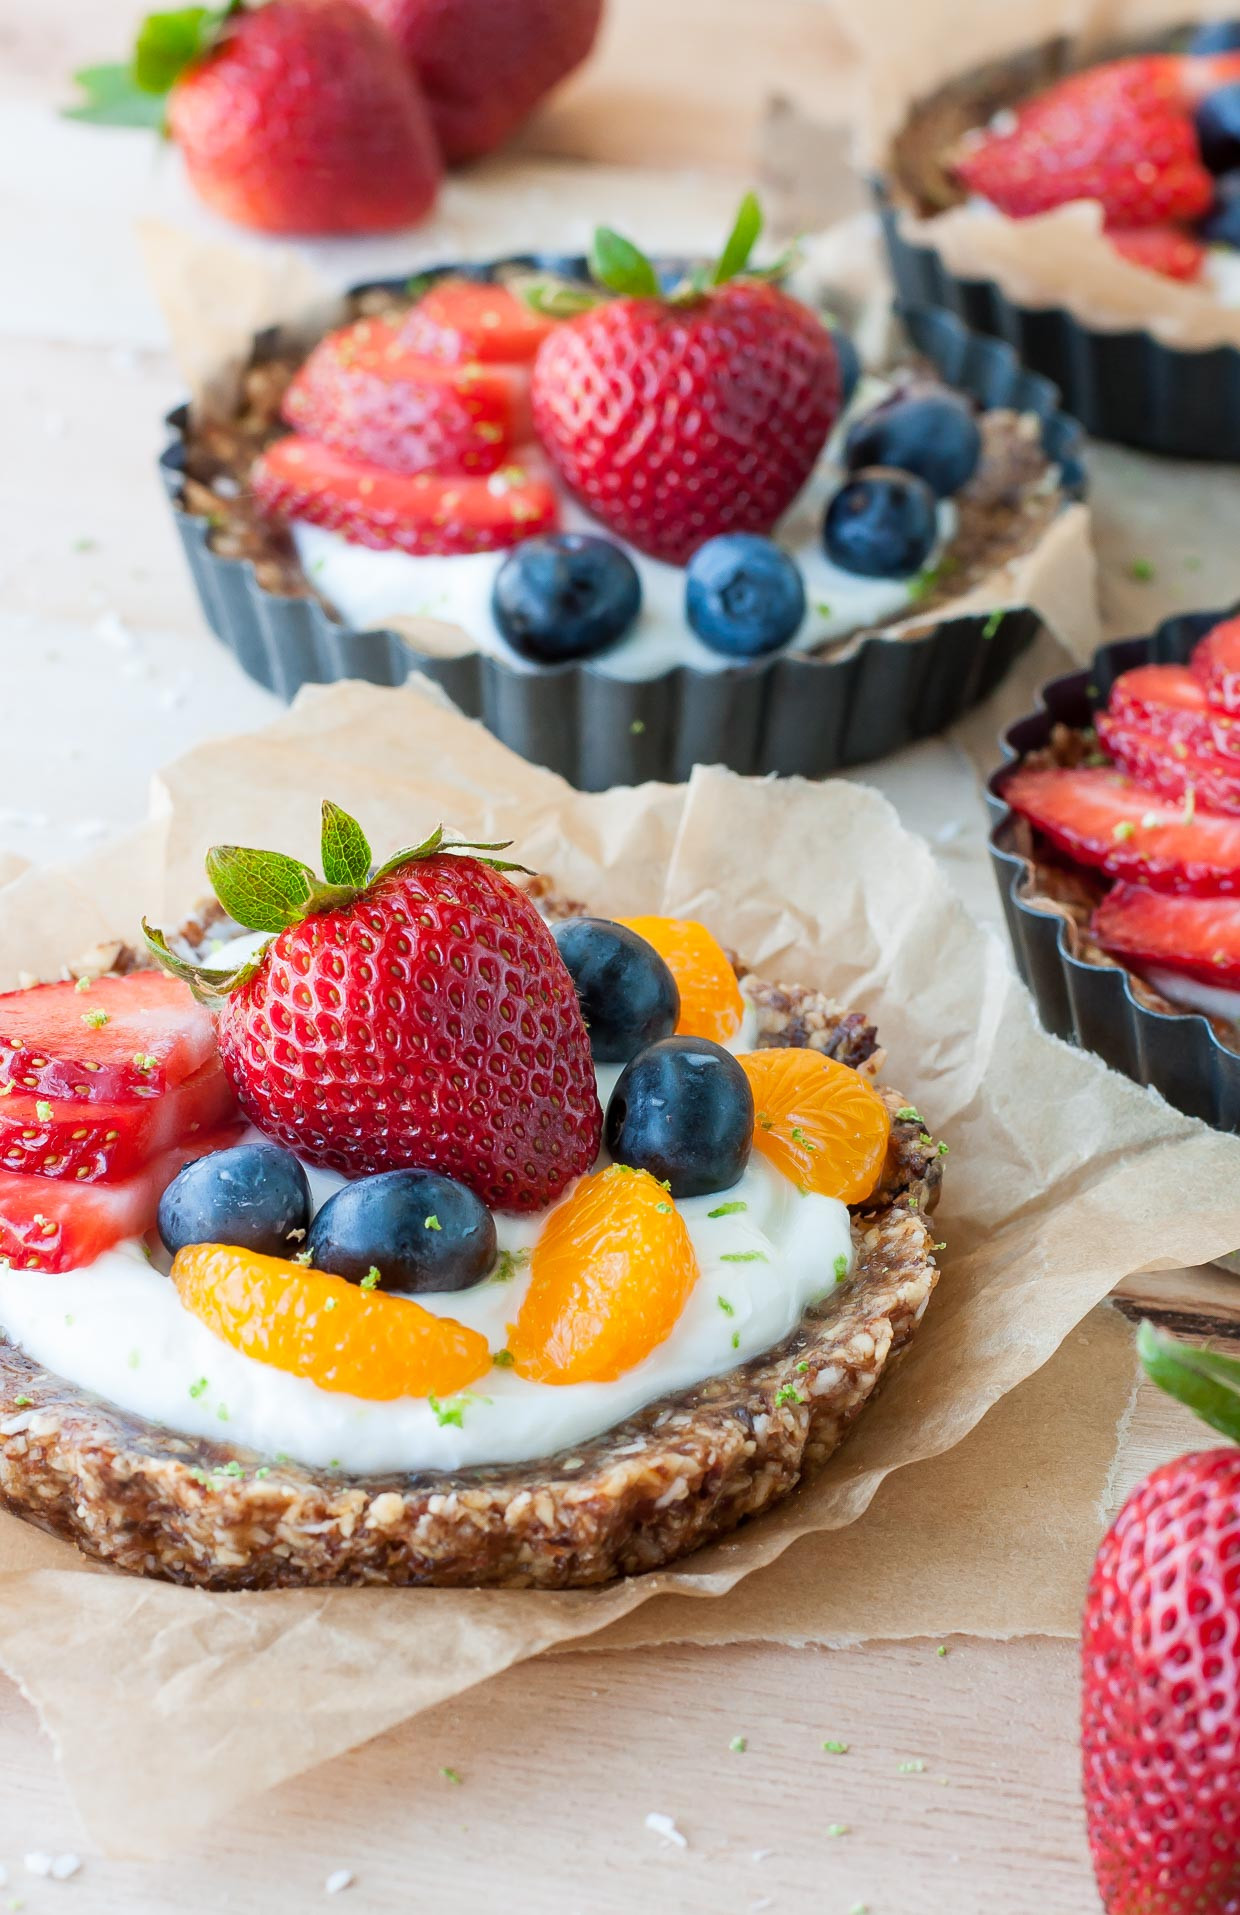 Fruit Desserts Healthy  Healthy No Bake Coconut Lime Fruit and Yogurt Tarts Peas